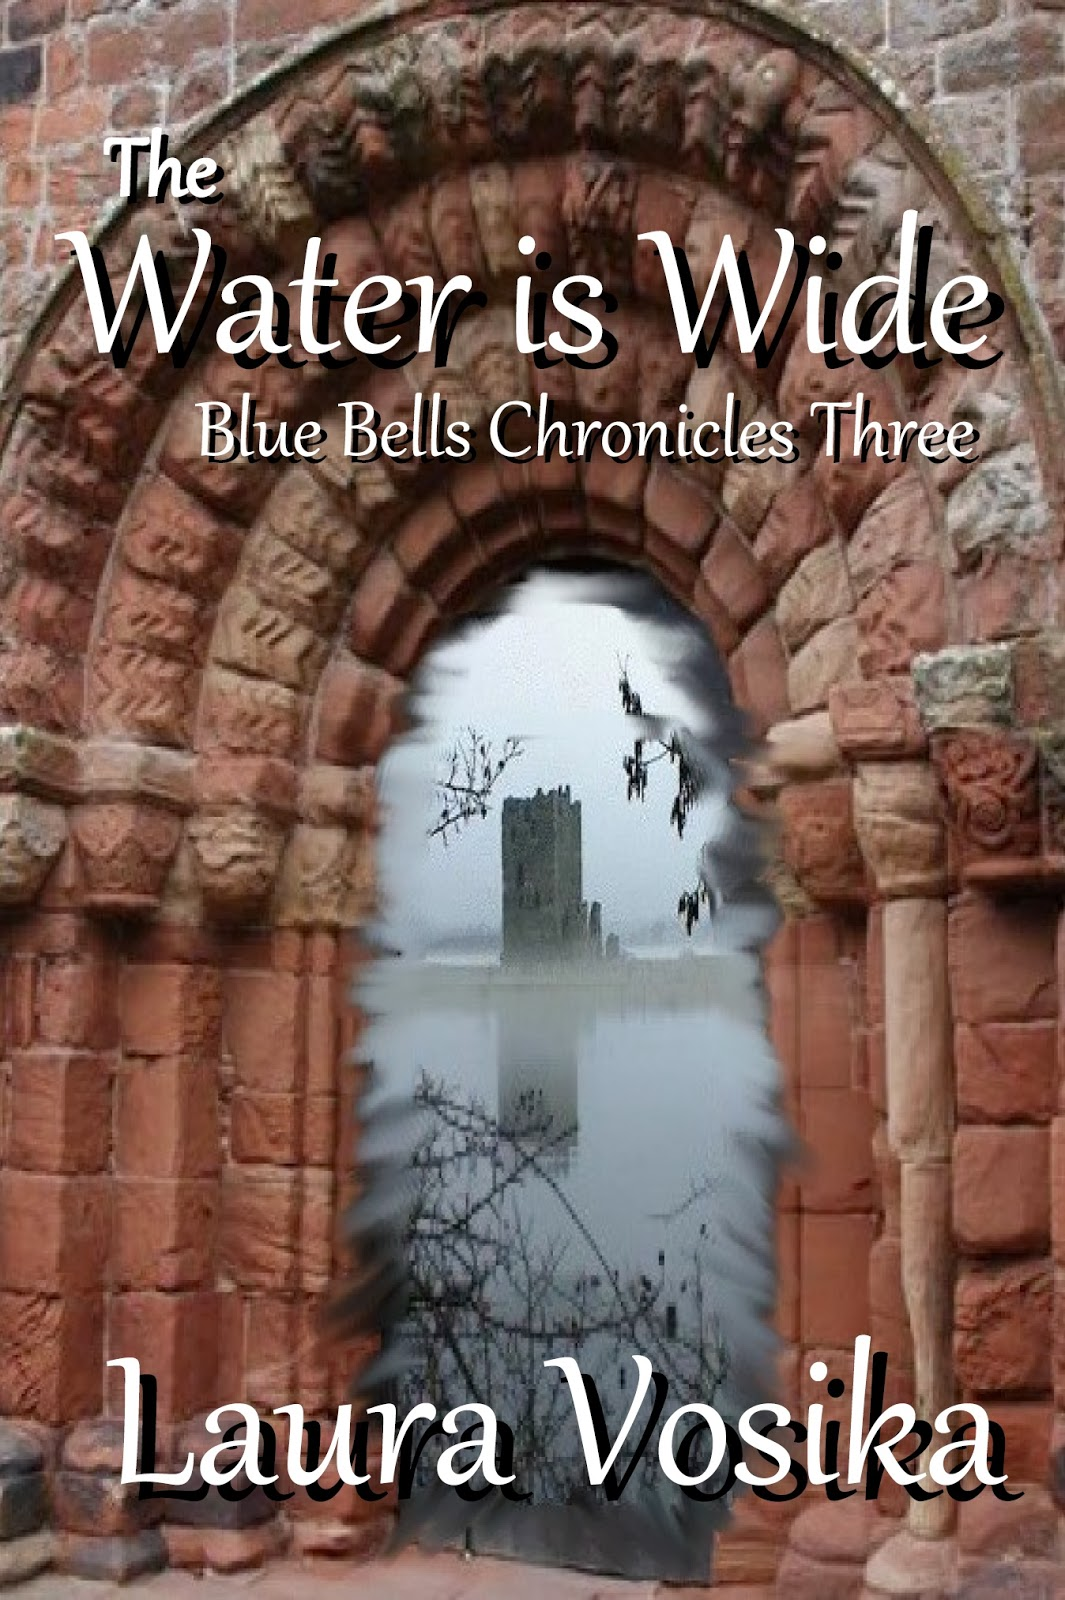 http://www.amazon.com/Water-Wide-Blue-Bells-Chronicles-ebook/dp/B00HLRDAGQ/ref=sr_1_sc_1?ie=UTF8&qid=1392662075&sr=8-1-spell&keywords=Laura+Voiska